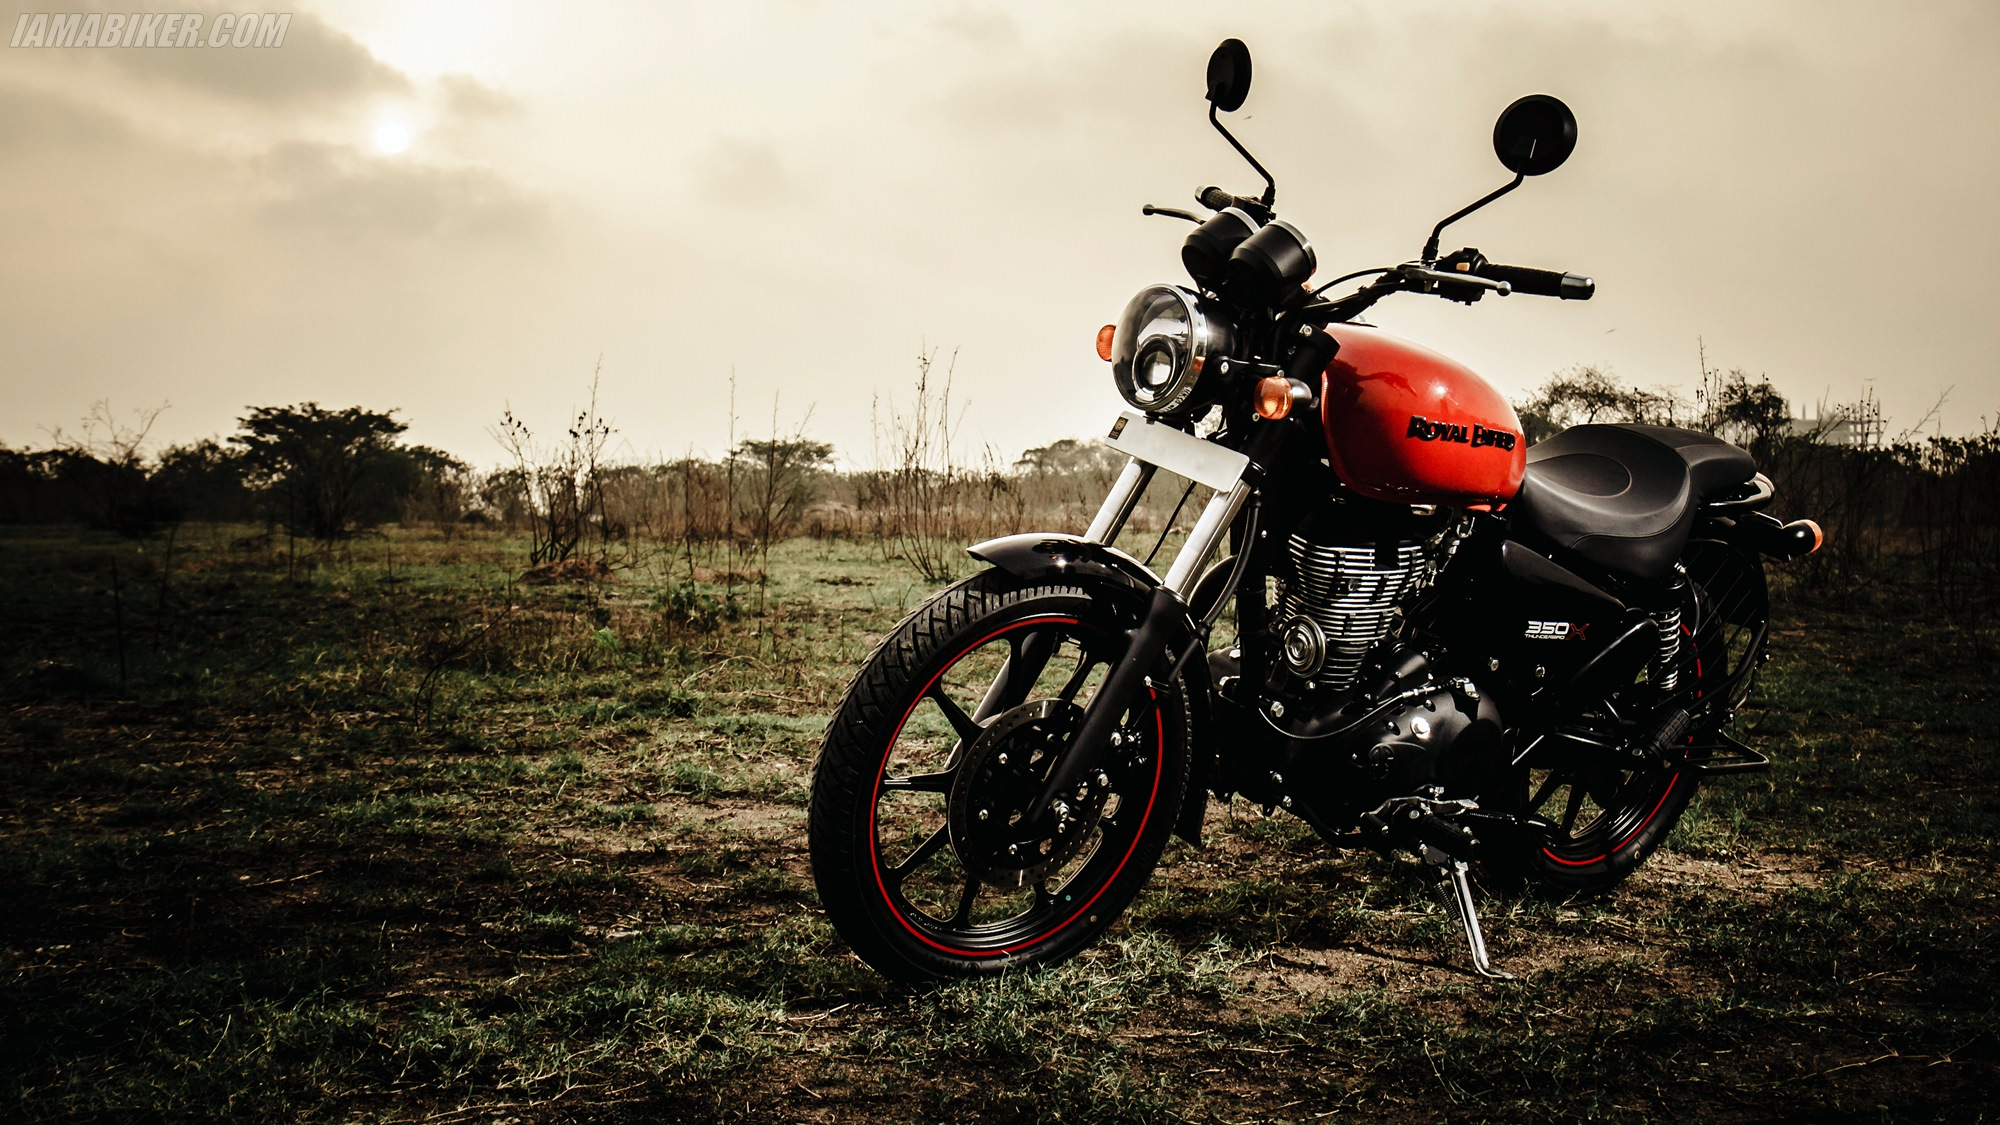 royal enfield thunderbird 350x hd wallpapers | iamabiker